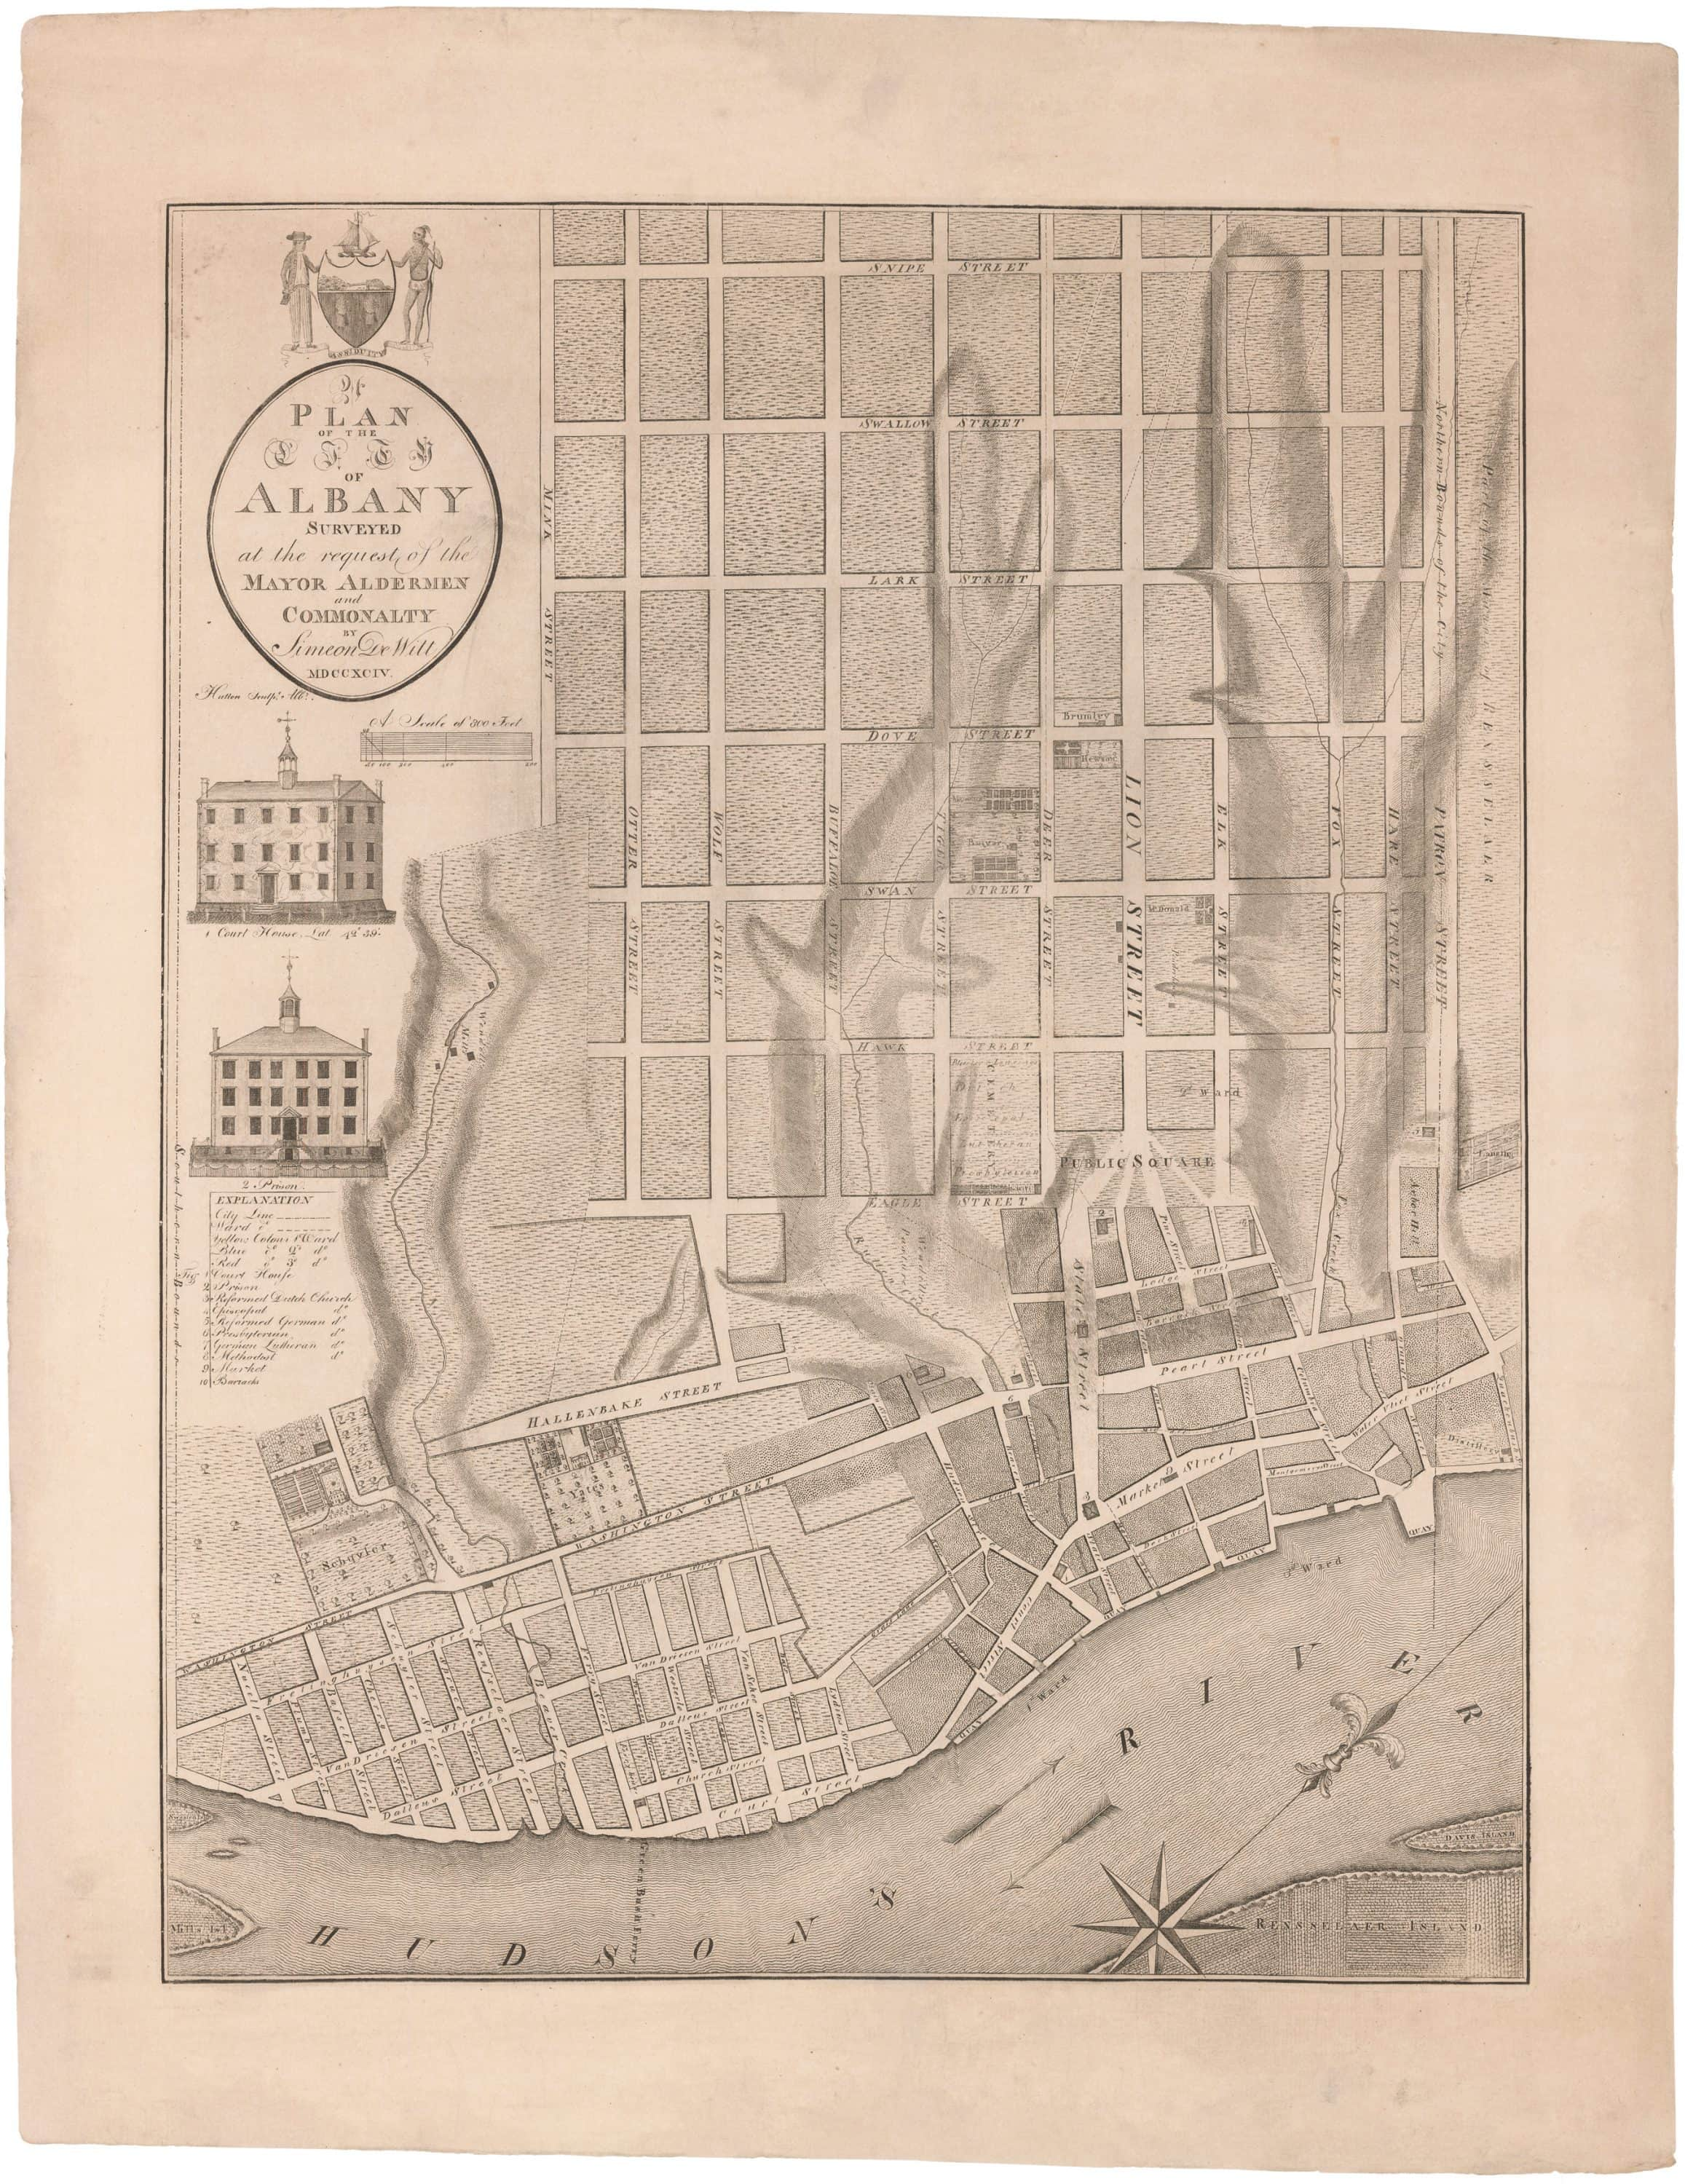 The first printed map of Albany New York - Rare & Antique Maps